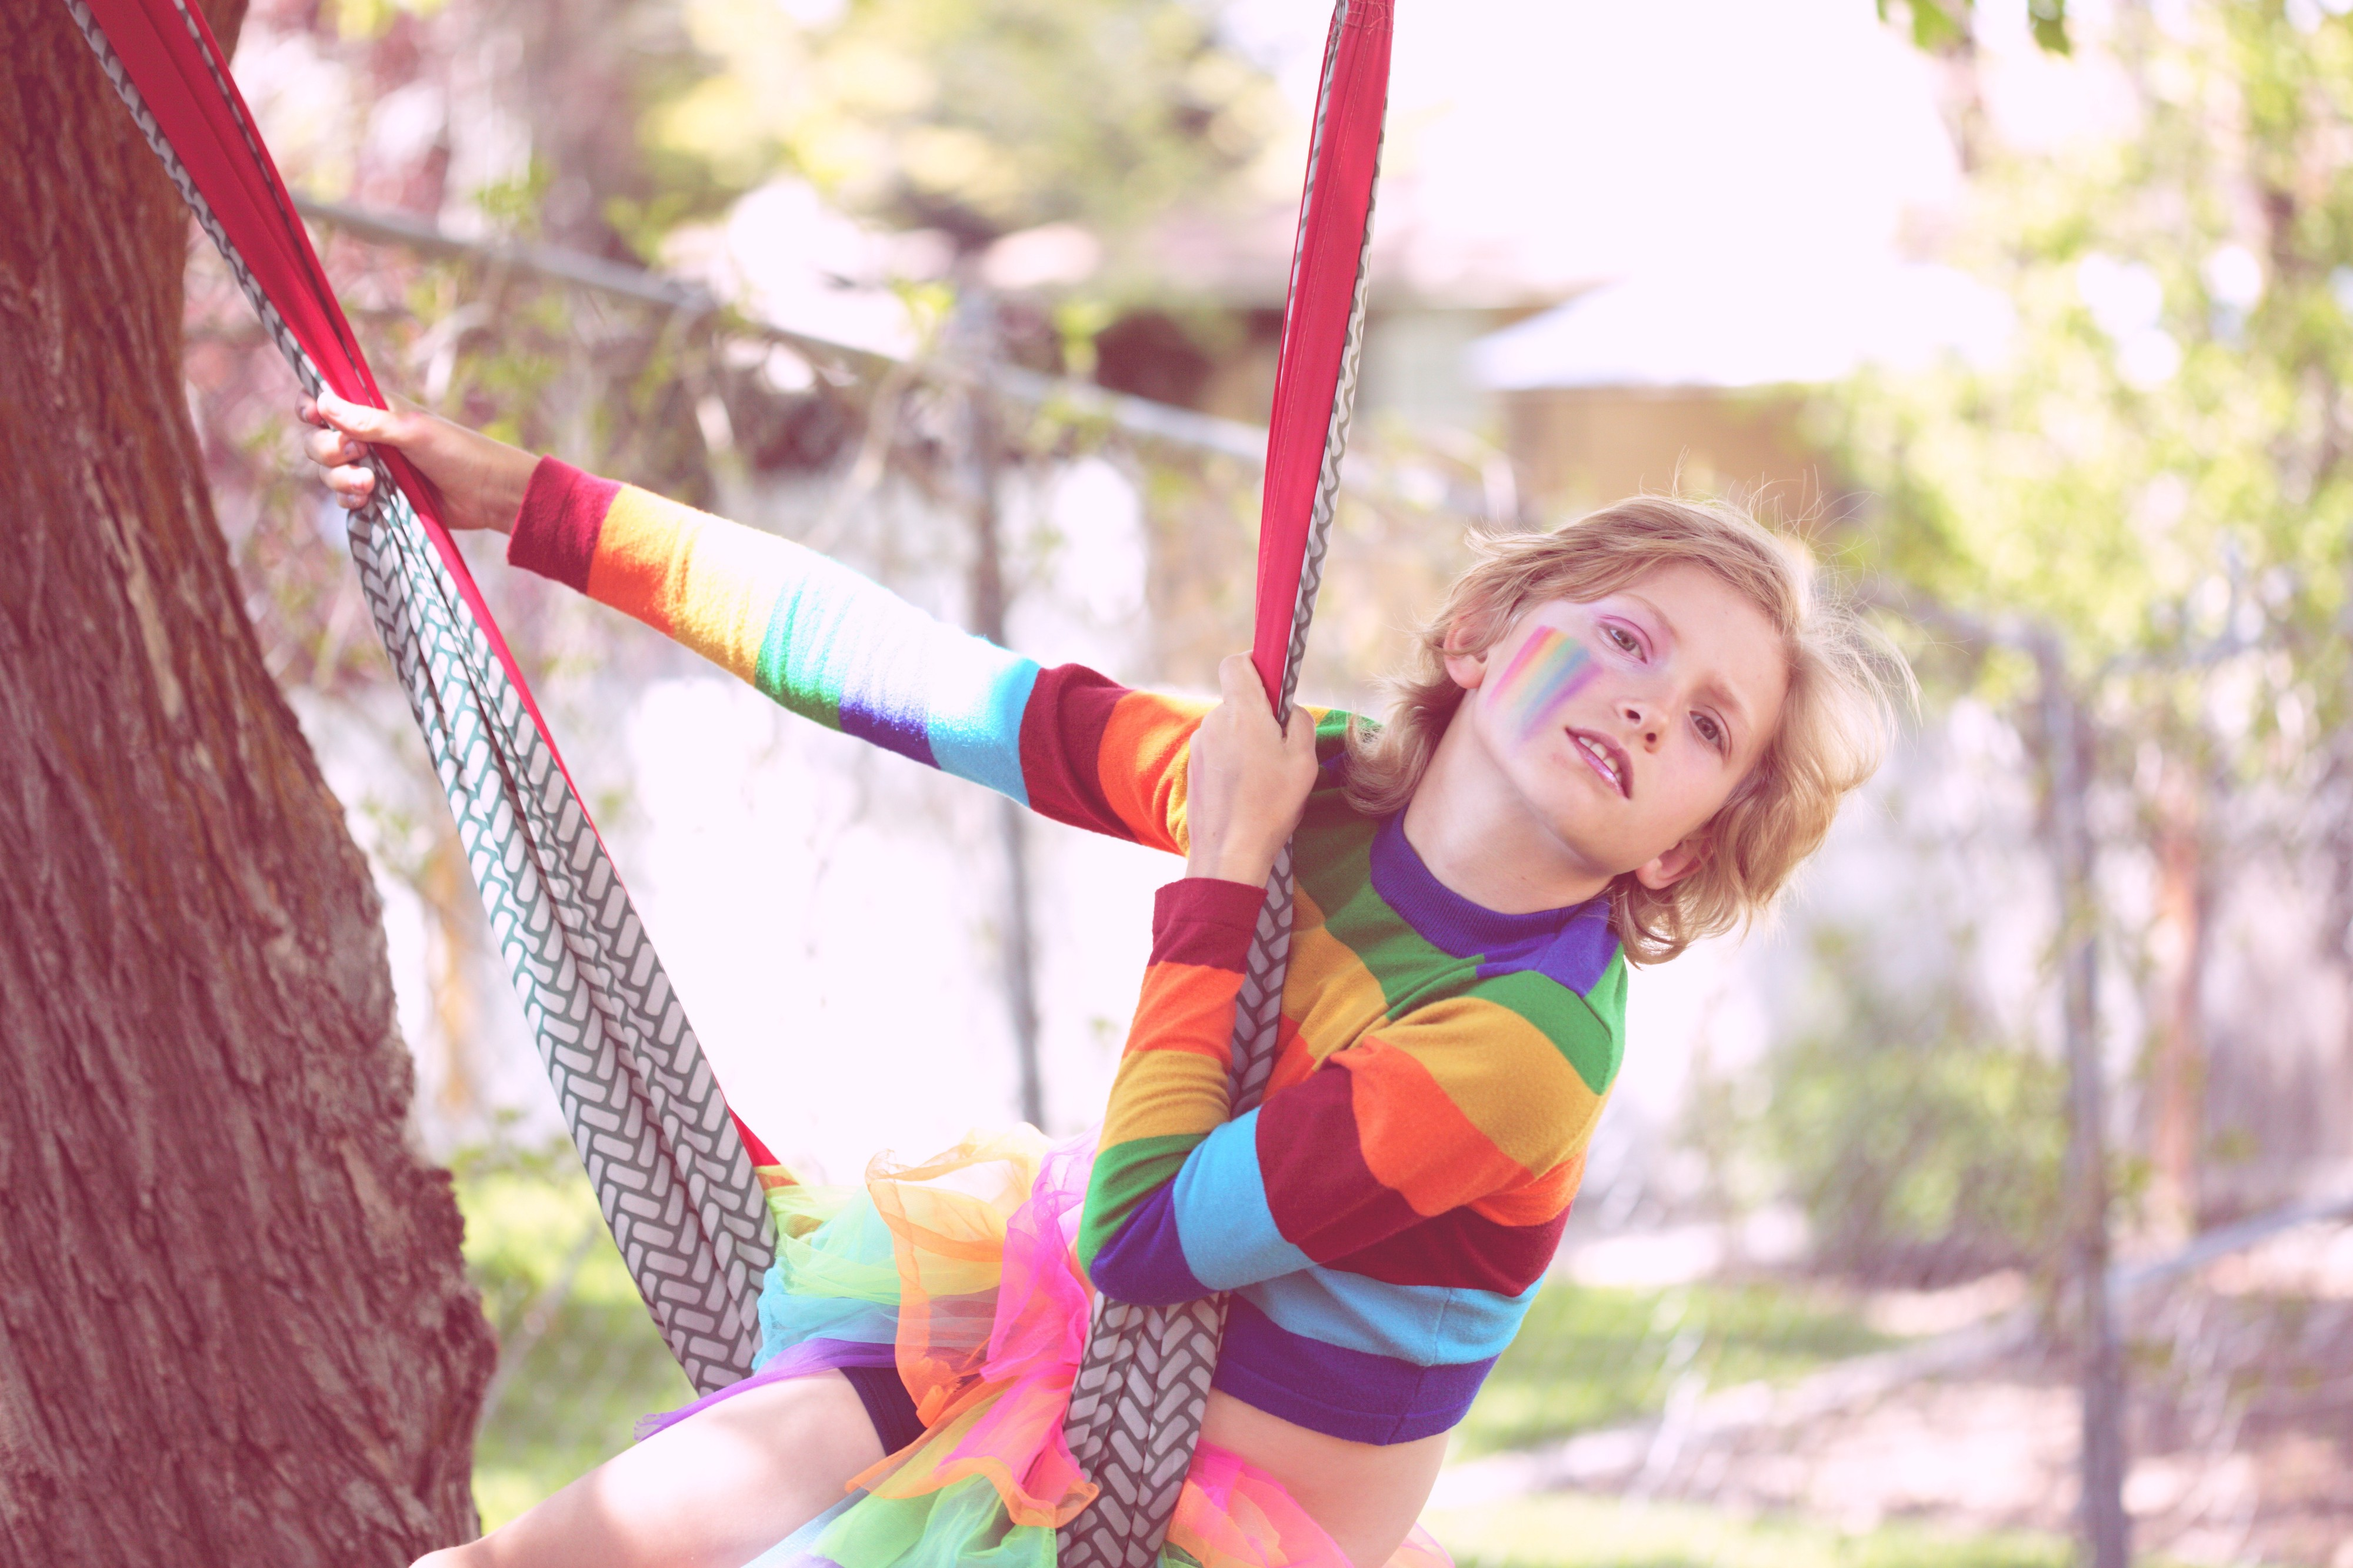 Photo of nonbinary child on swinging on a tree